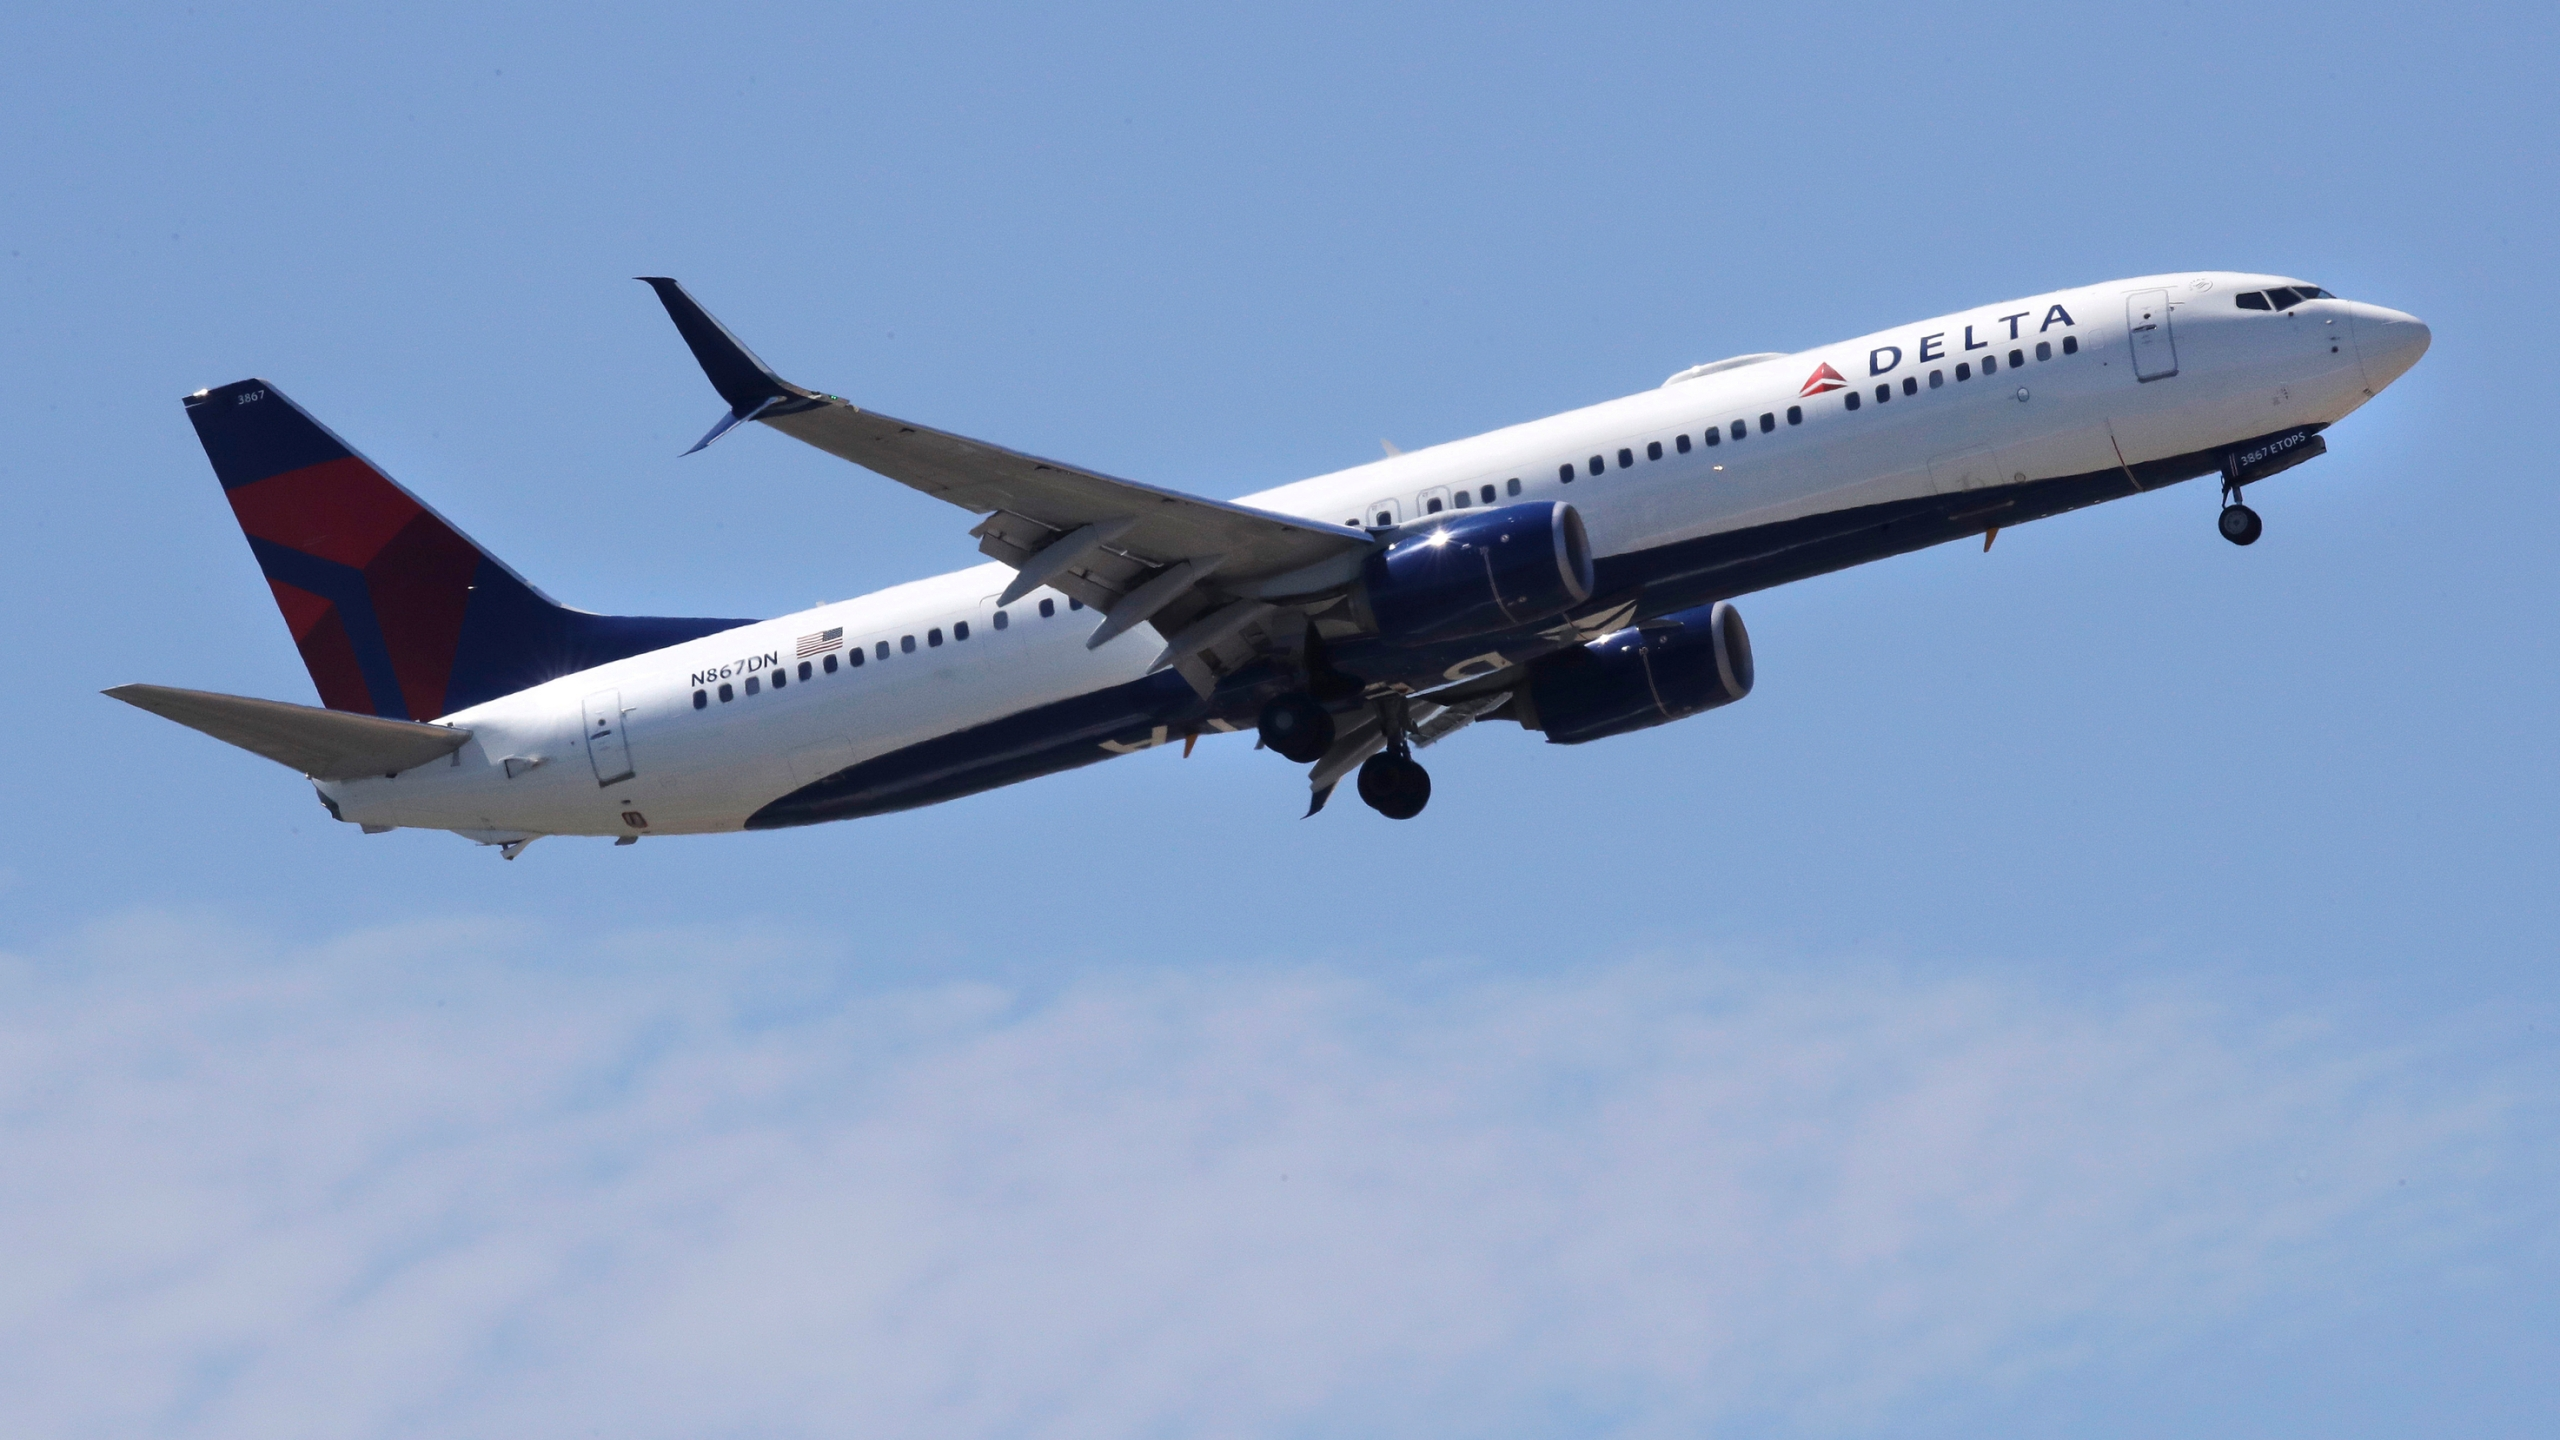 Earns_Delta_Air_Lines_50395-159532.jpg50873963